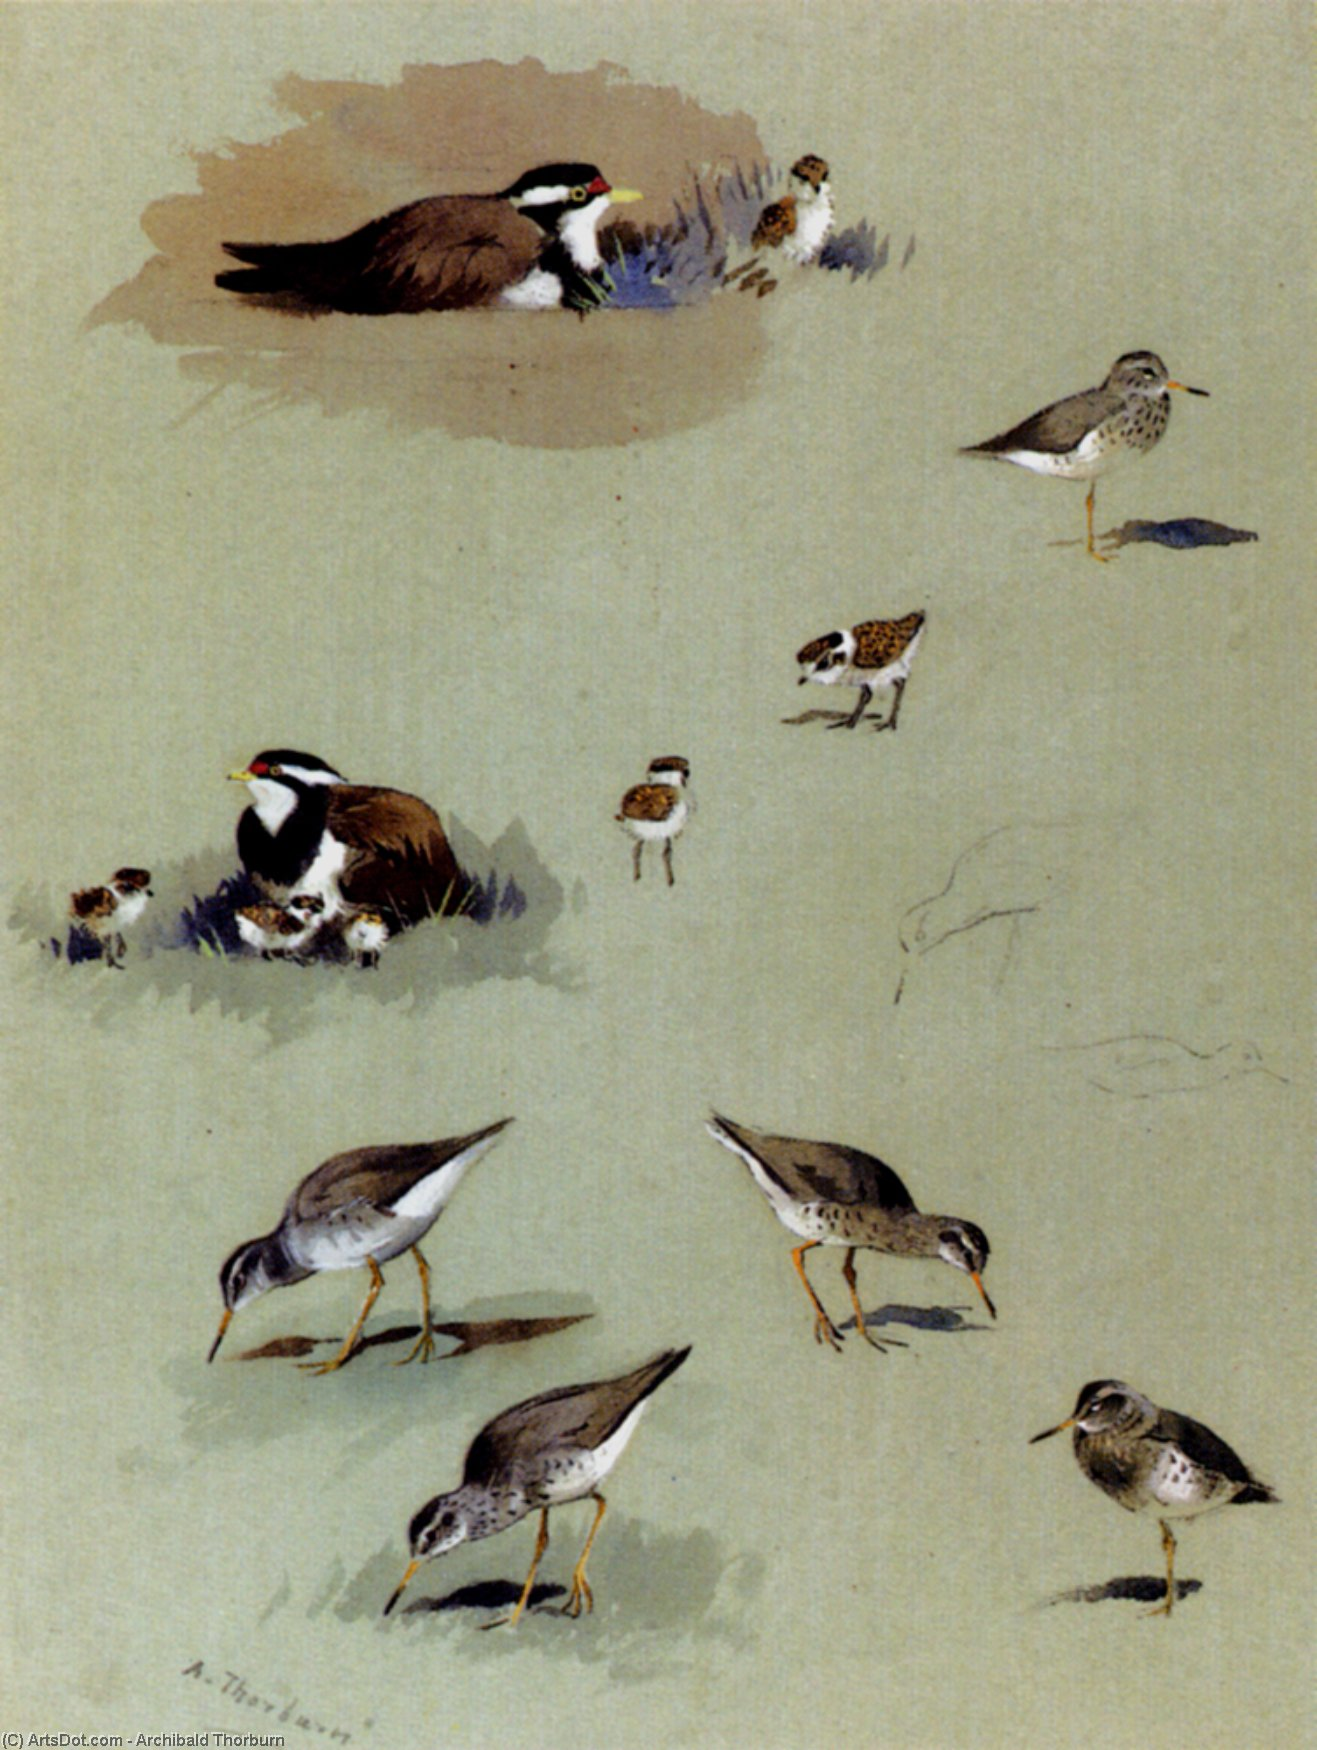 Study Of Sandpipers, Cream-Coloured Coursers And Other Birds, Watercolour by Archibald Thorburn (1860-1935, United Kingdom)